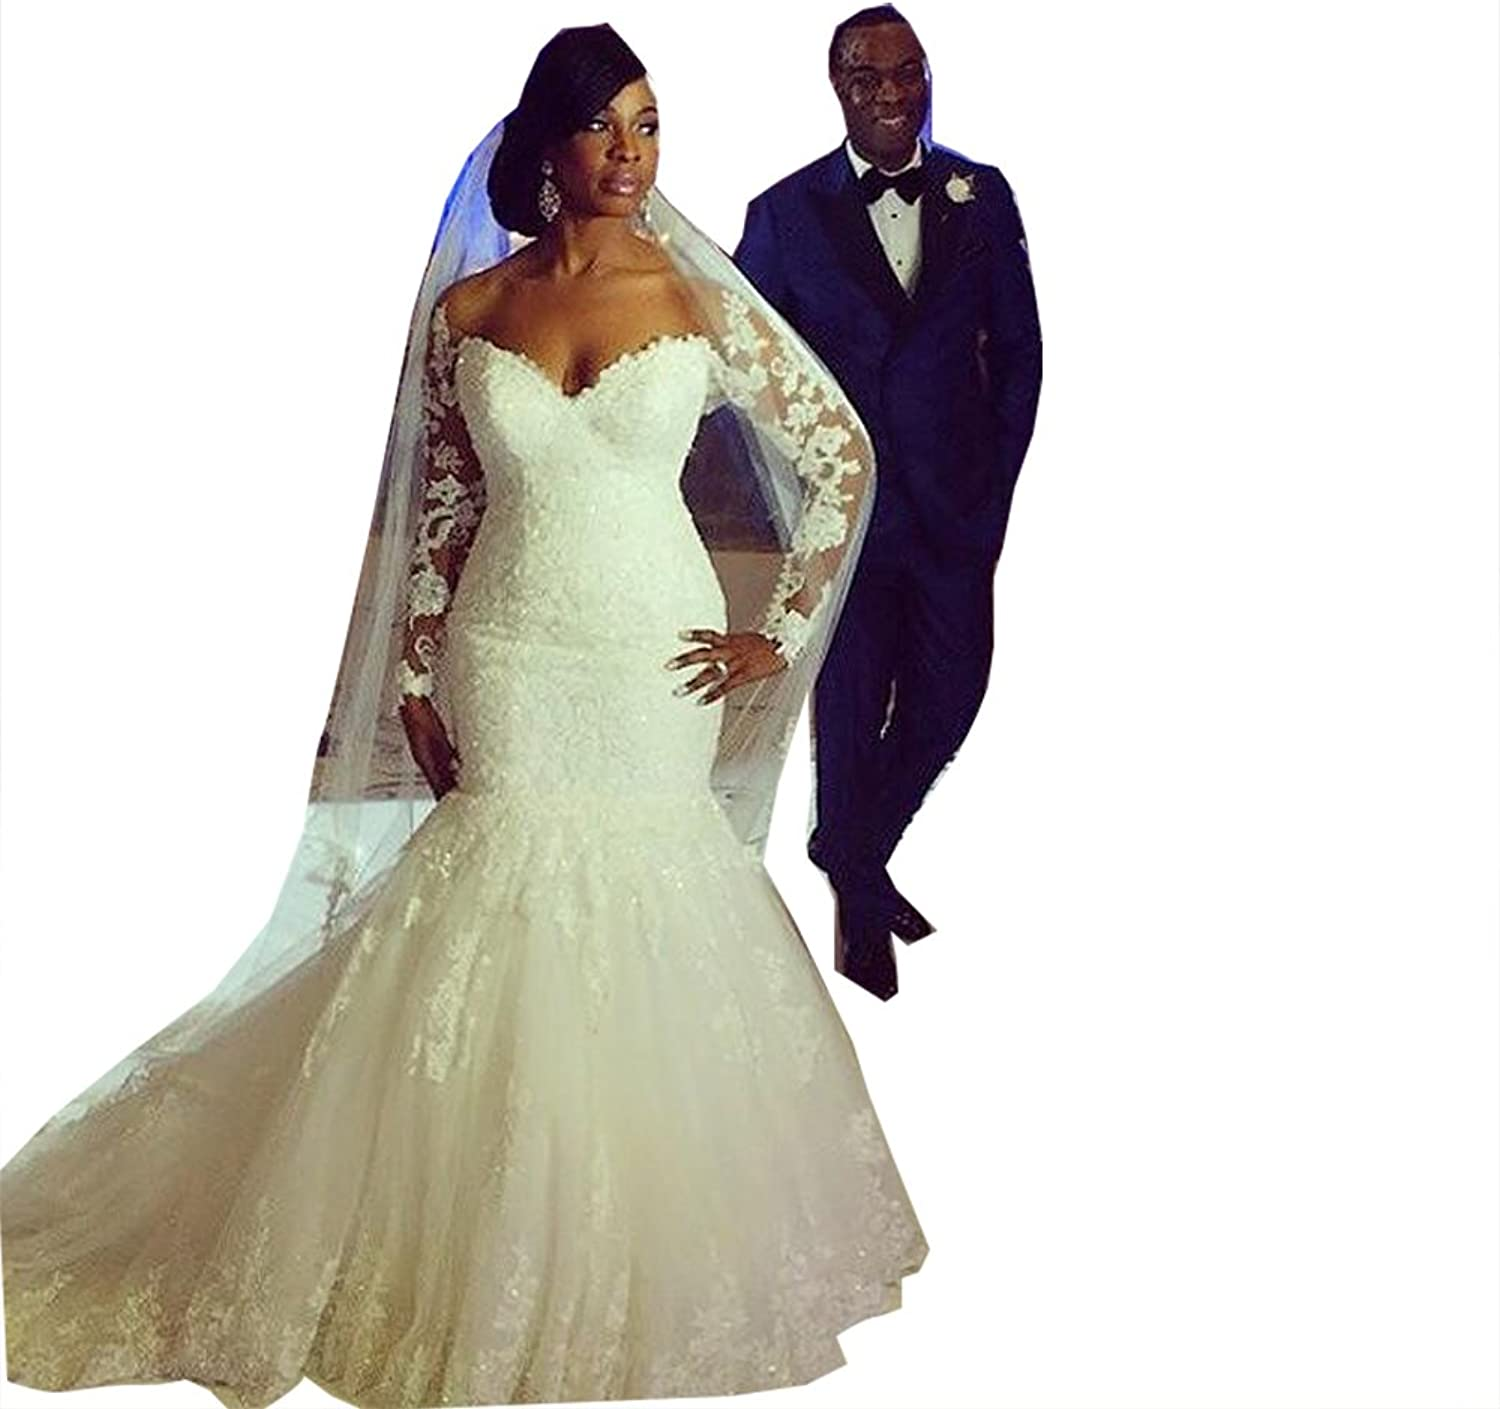 Fanciest Women's Lace Wedding Dresses with Long Sleeves Mermaid Bridal Gowns White